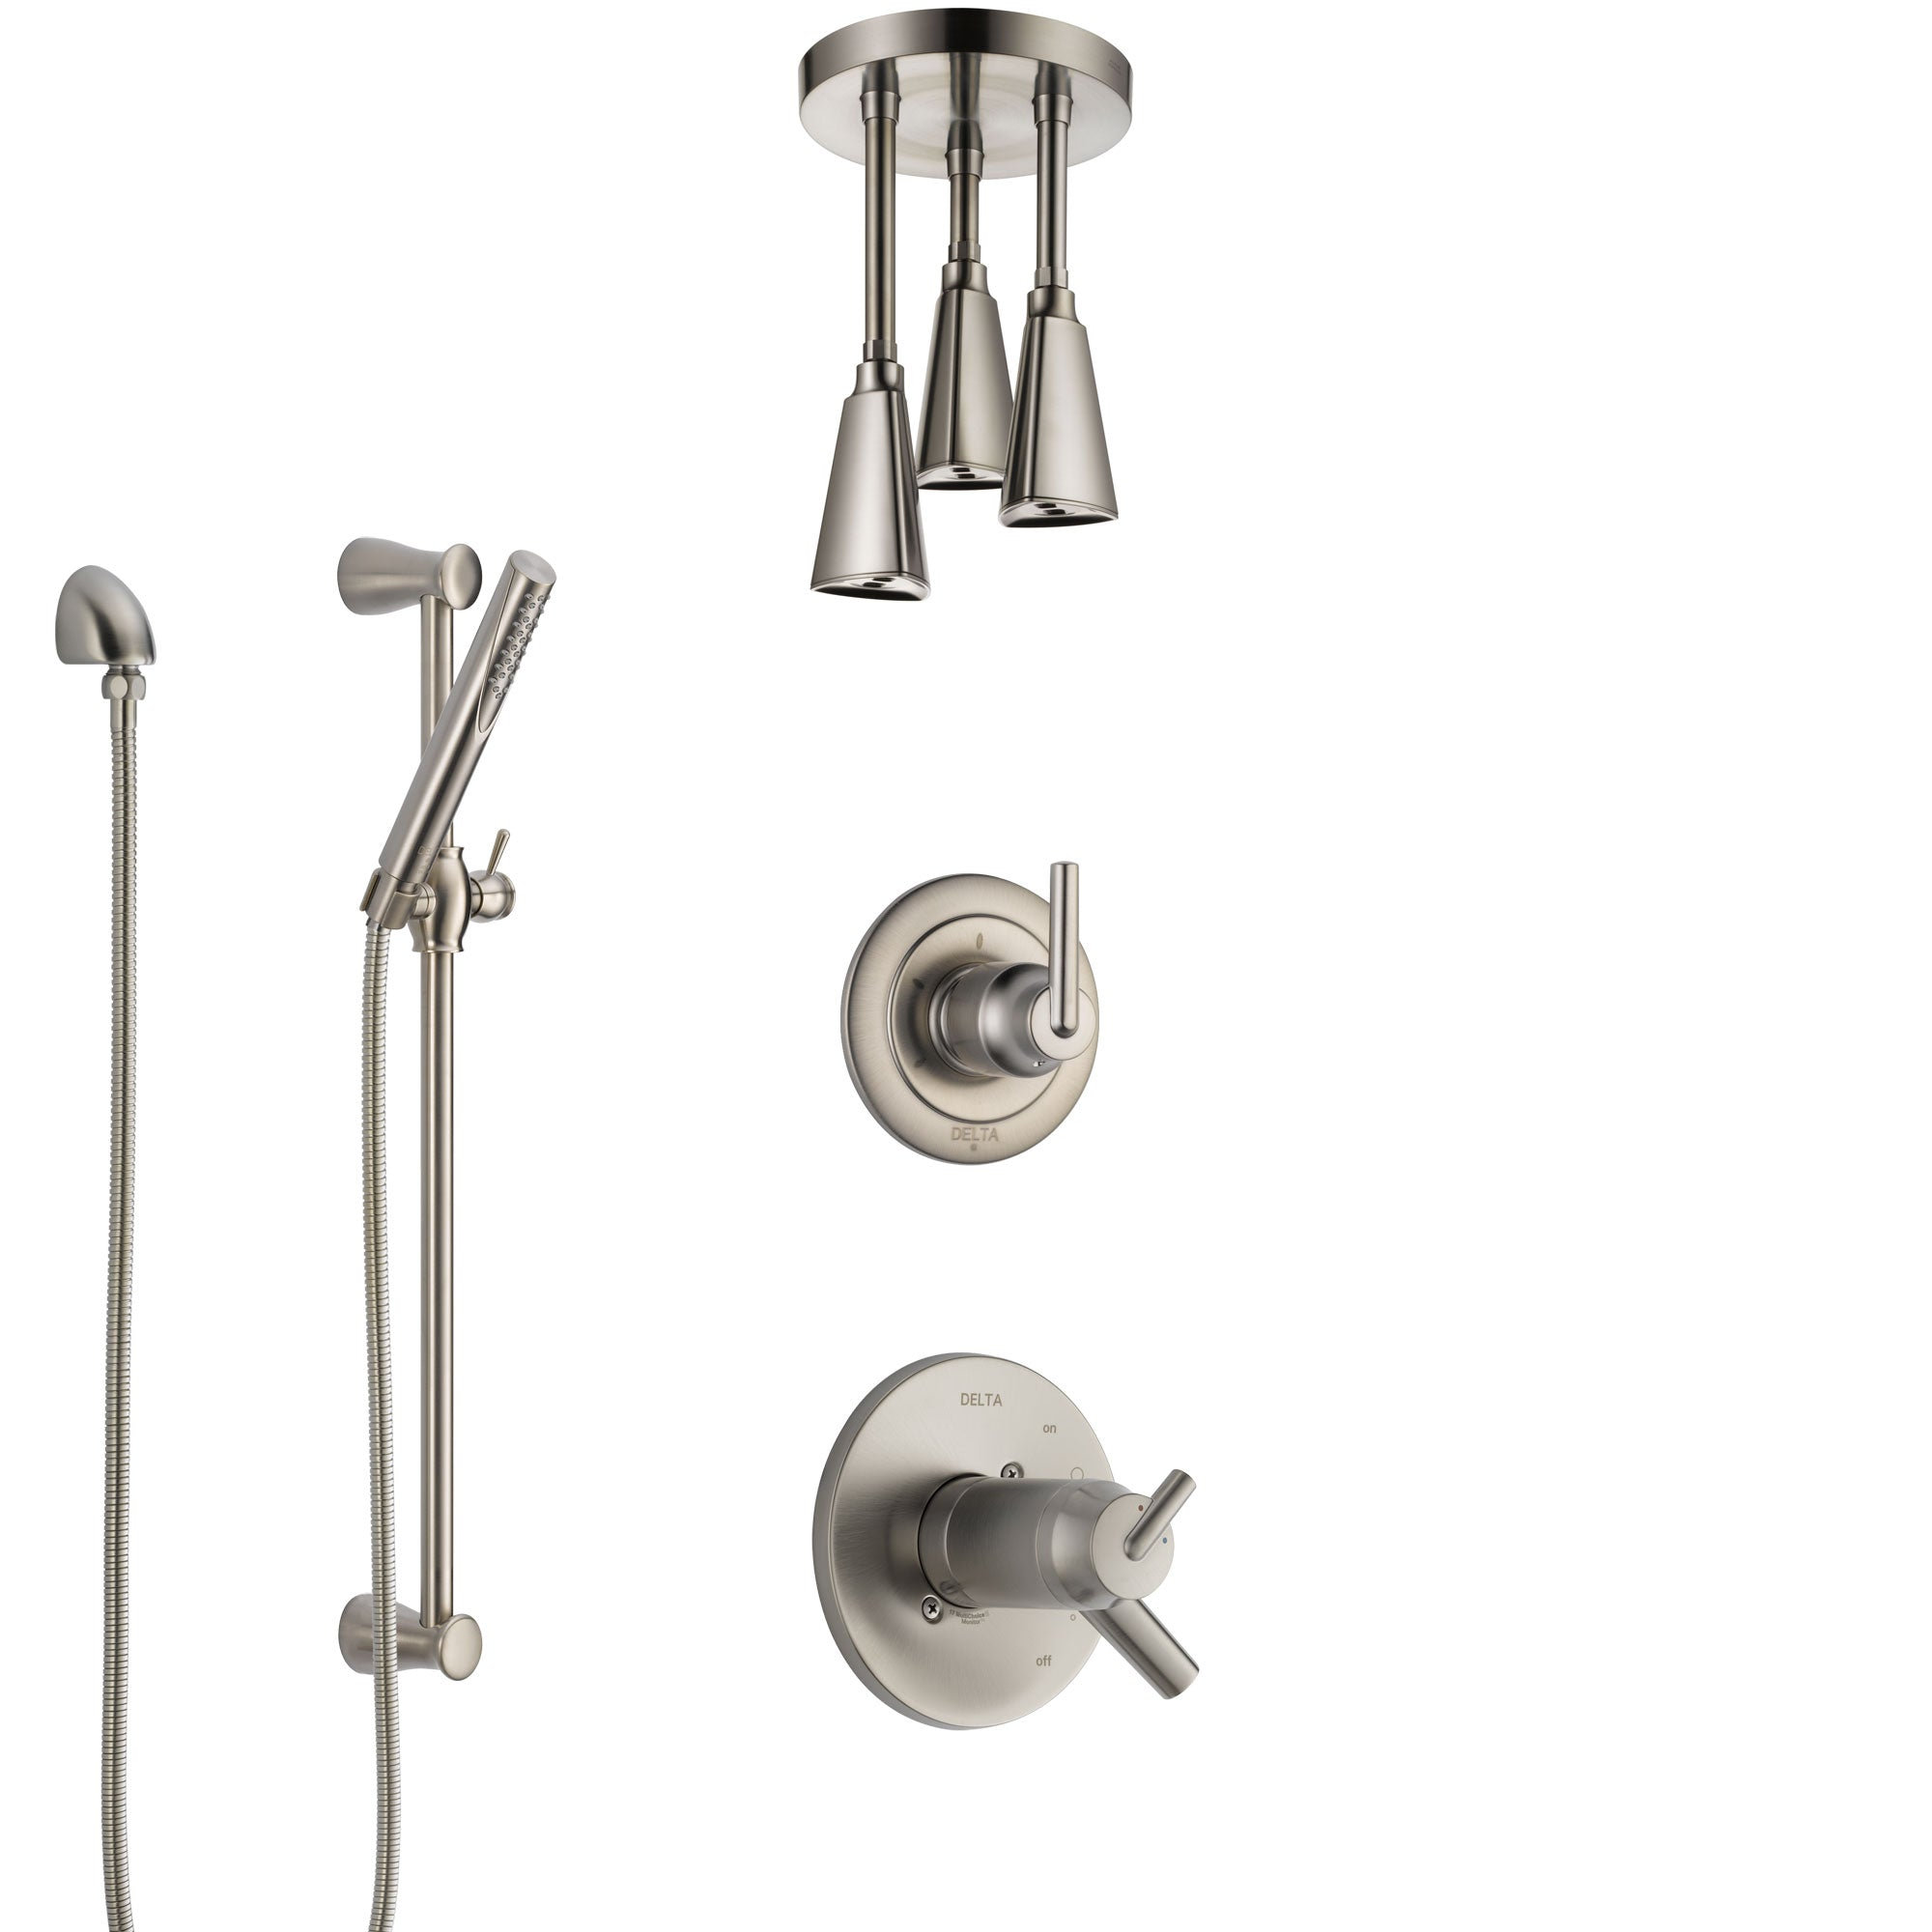 Delta Trinsic Dual Thermostatic Control Handle Stainless Steel Finish Shower System, Diverter, Ceiling Mount Showerhead, and Hand Shower SS17T592SS2